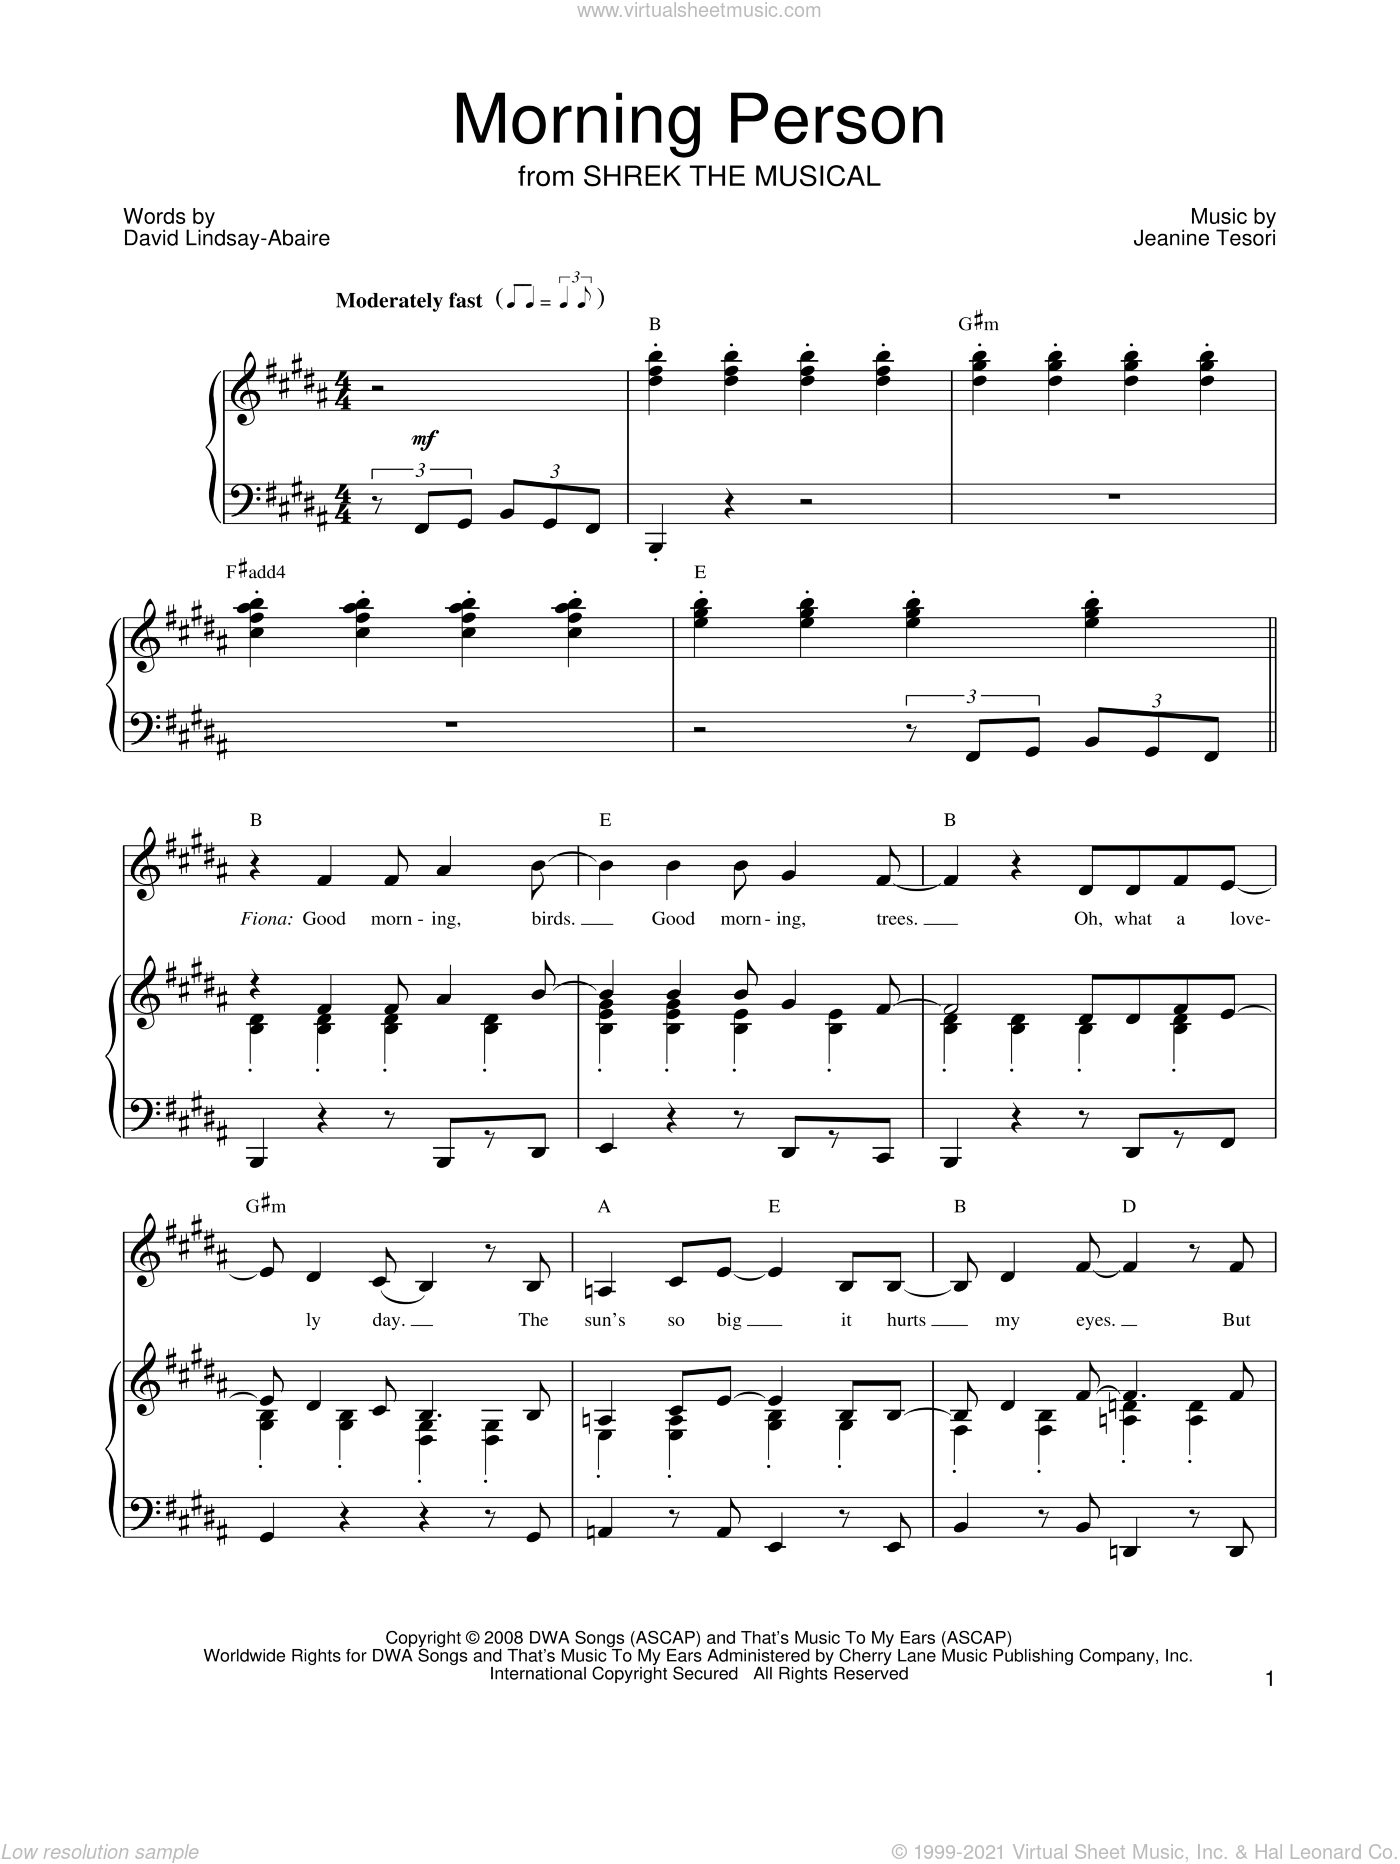 Morning Person sheet music for voice, piano or guitar by Jeanine Tesori and David Lindsay-Abaire. Score Image Preview.